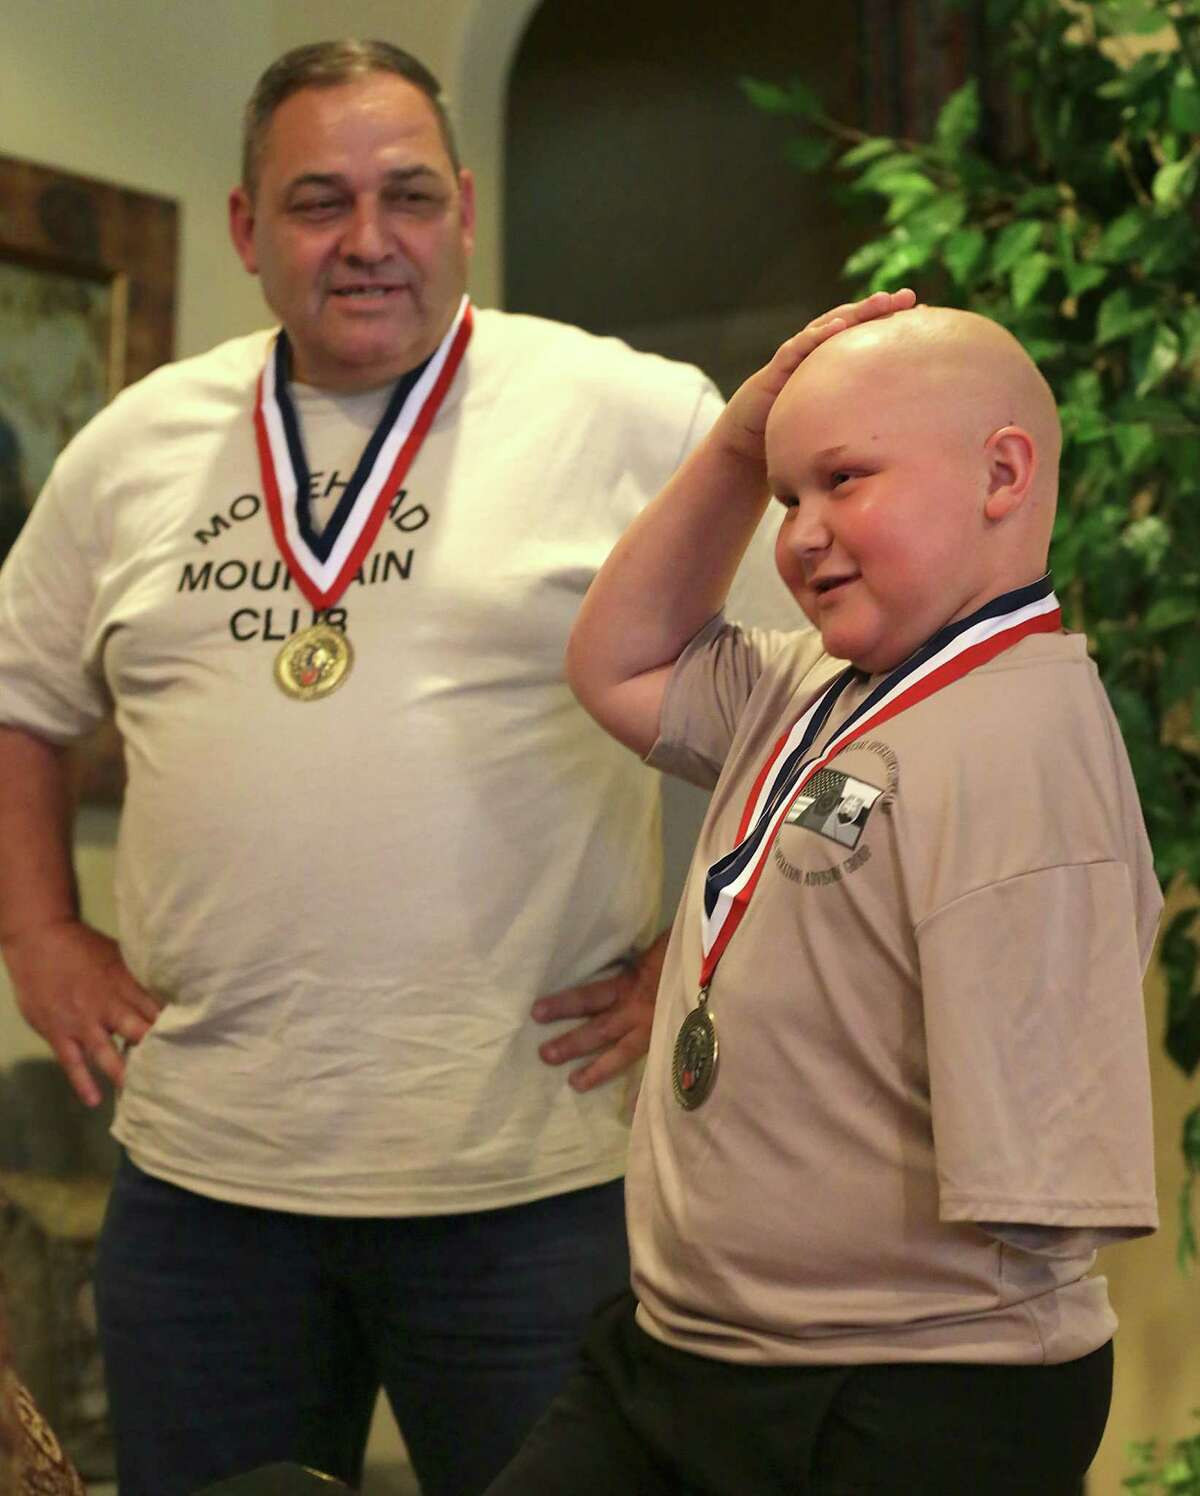 Lt. Col Jerry Touchet listens to his inspirational young friend cancer patient Damon Billeck, 12, as they finally got a surprise meeting on Friday, May, 27, 2016, after writing to each other and sending gifts over the past two years.